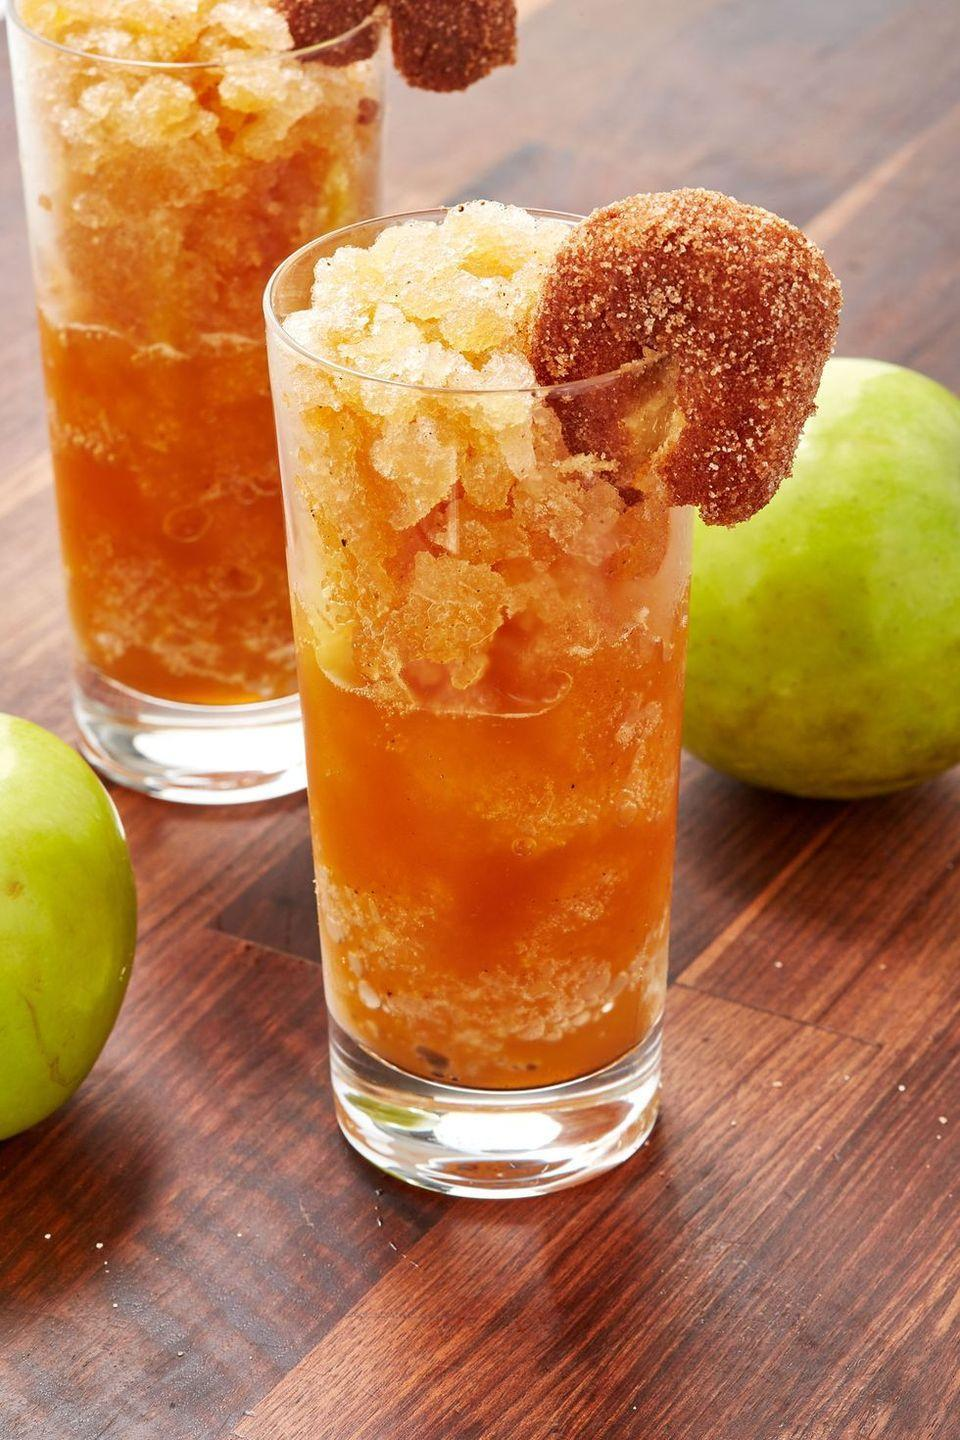 "<p>You've probably had plenty of apple ciders this season, but how about apple cider slushies? This twist on a classic full drink is a chilling way to spend your Halloween.</p><p><em><a href=""https://www.delish.com/cooking/recipes/a49600/apple-cider-slushies-recipe/"" rel=""nofollow noopener"" target=""_blank"" data-ylk=""slk:Get the recipe from Delish »"" class=""link rapid-noclick-resp""> Get the recipe from Delish »</a></em></p>"